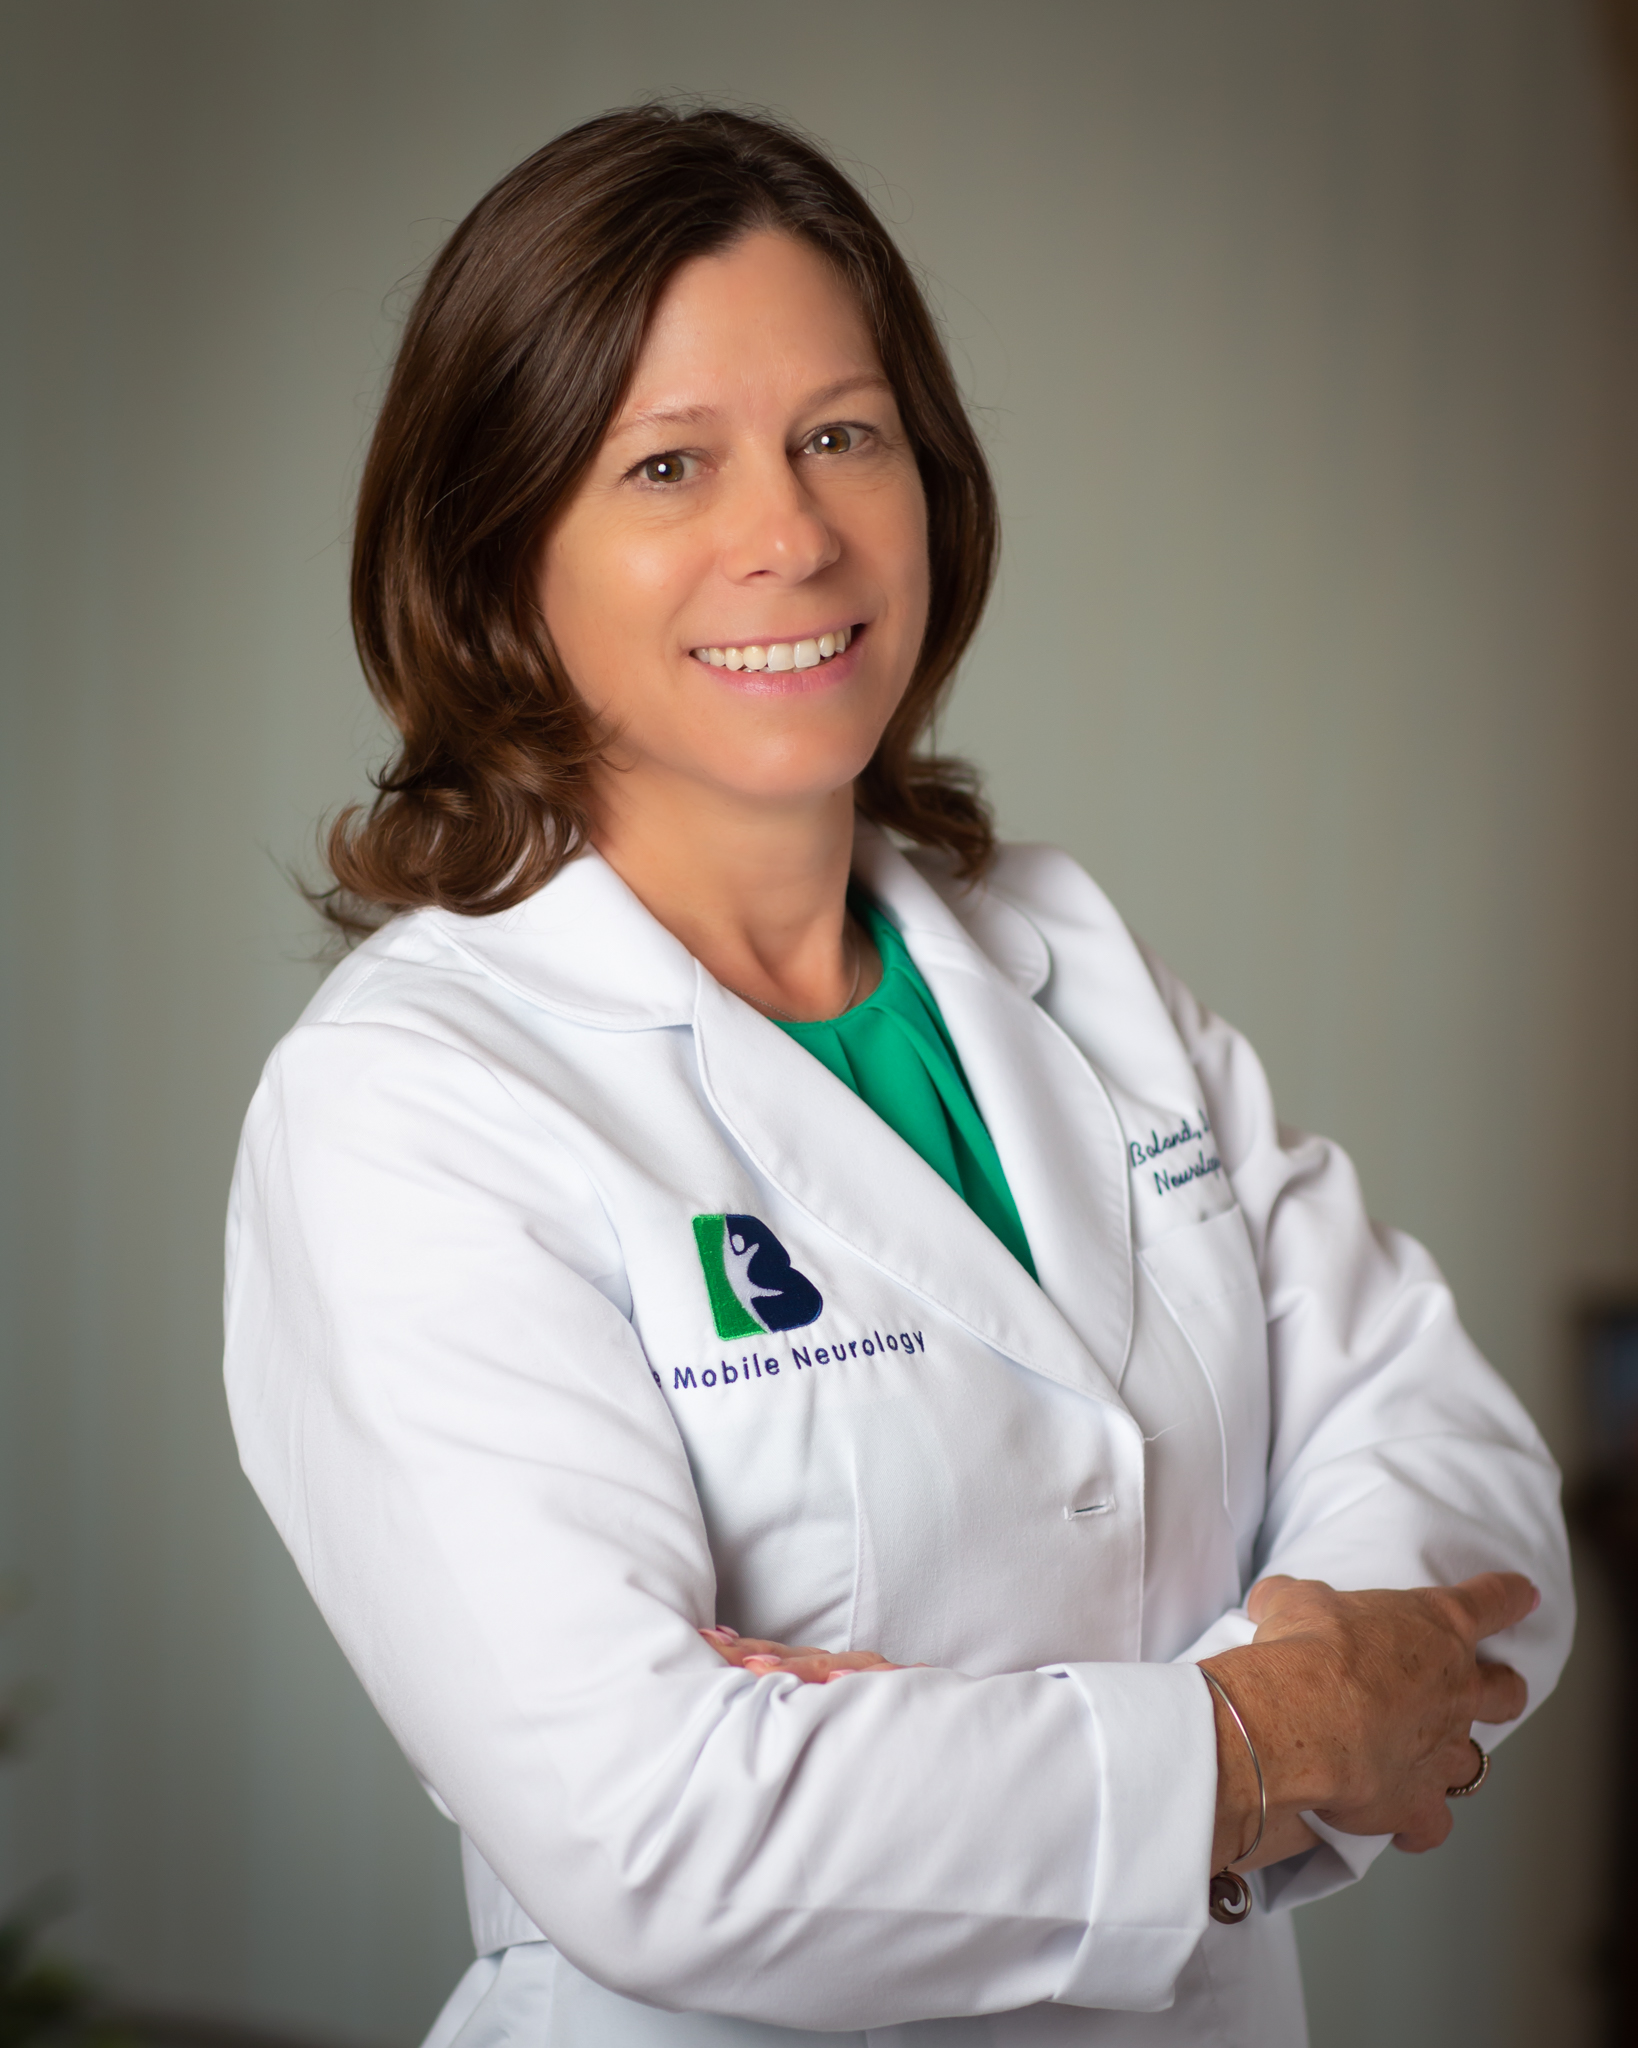 Neurologist Dr. Deborah Boland Expands Telemedicine Services to Homebound Neurological Patients